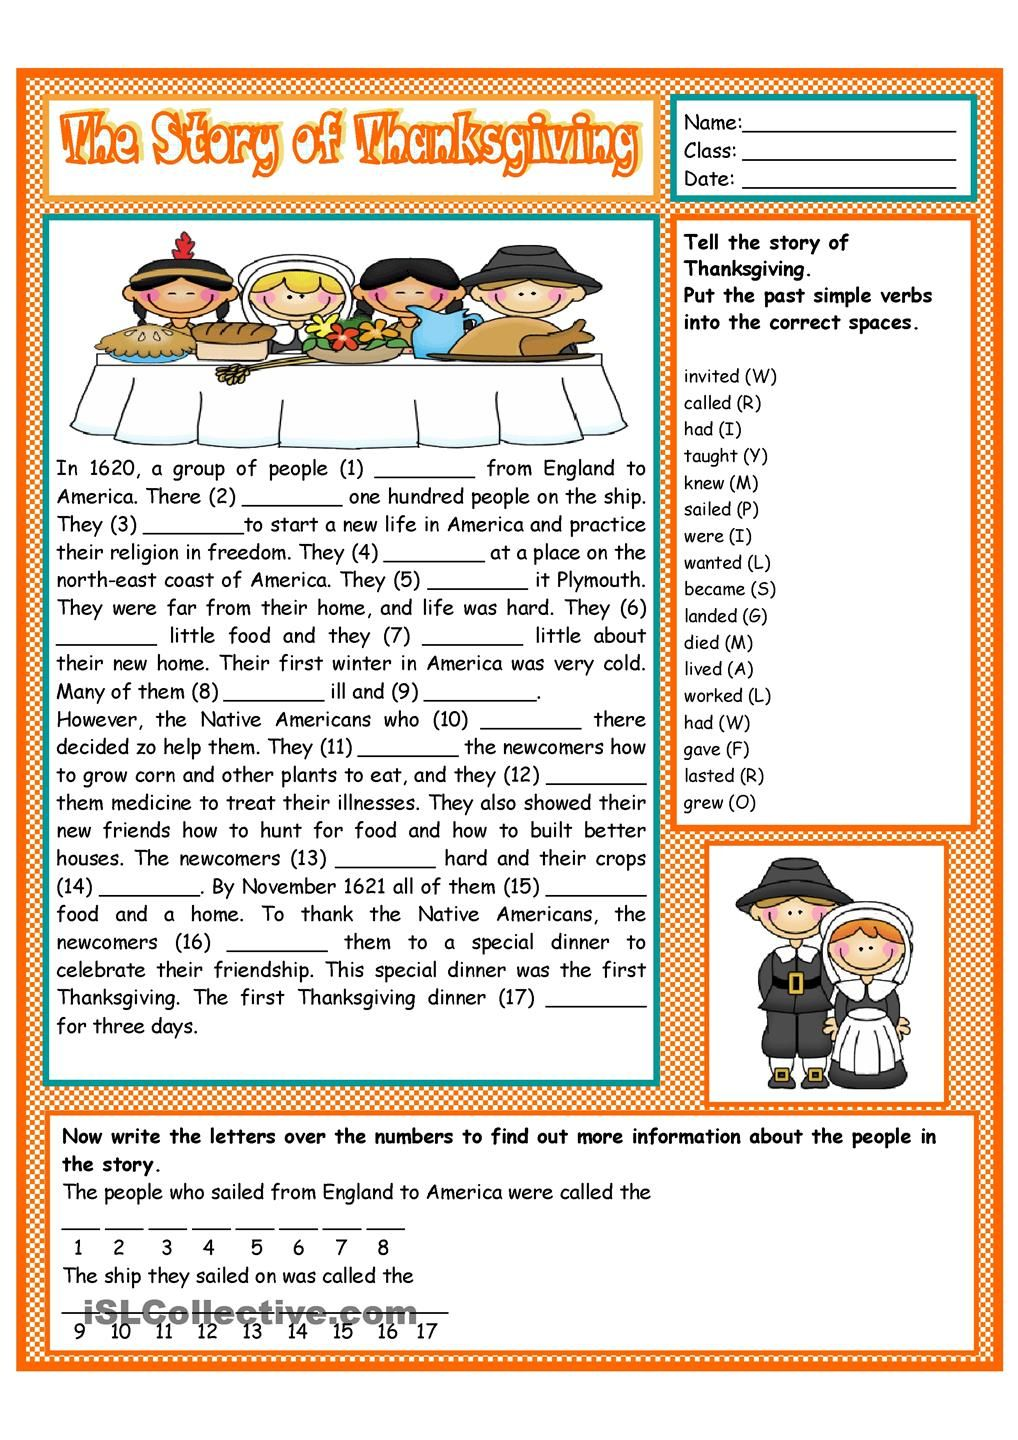 medium resolution of The Story of Thanksgiving   Thanksgiving reading comprehension